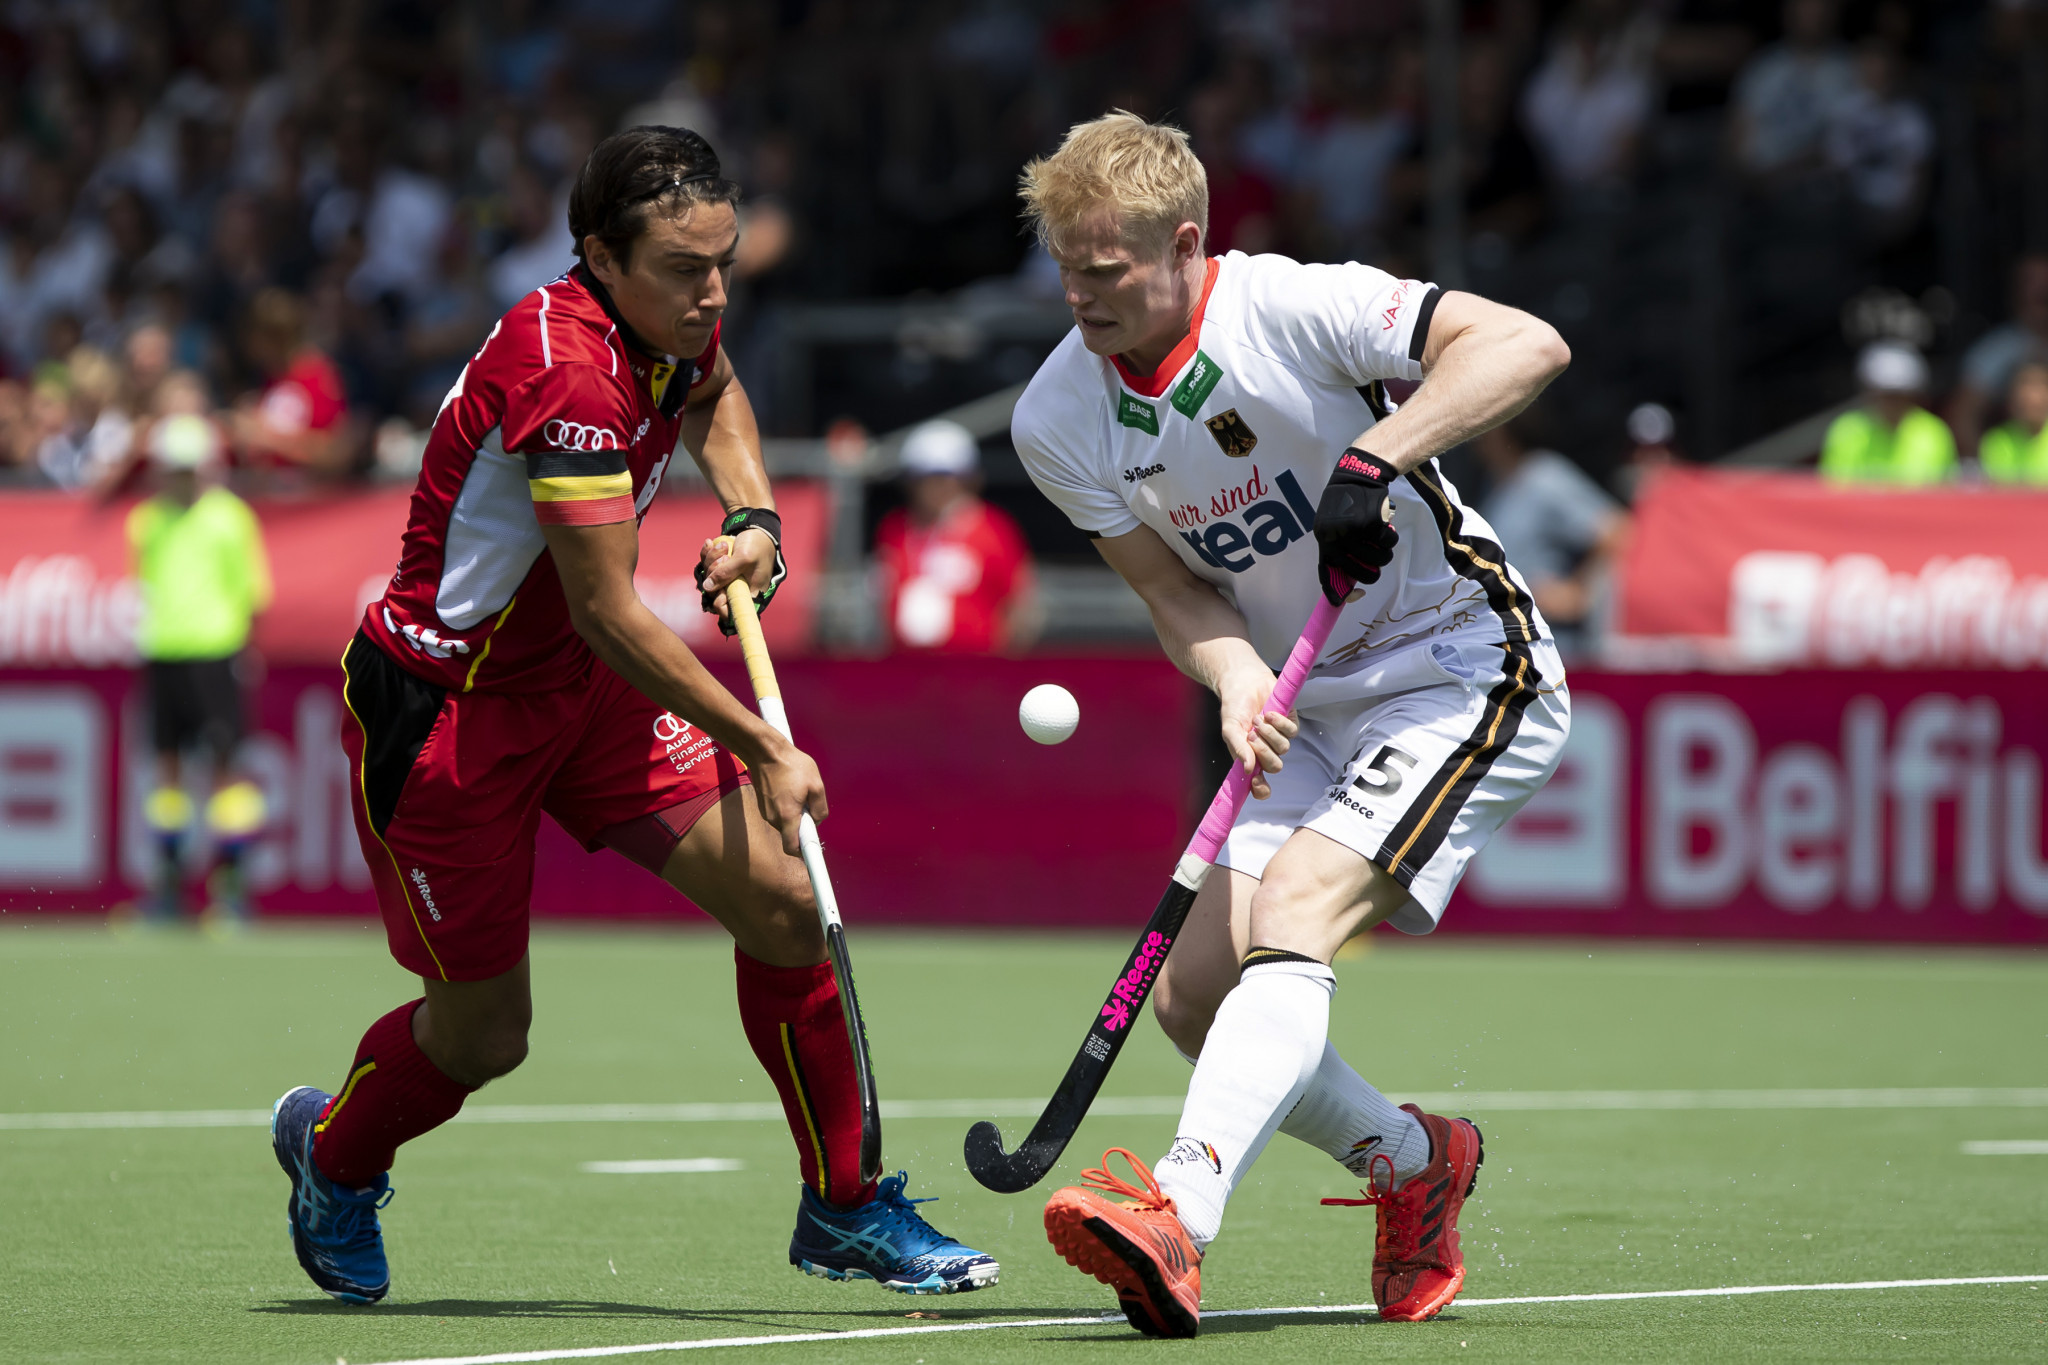 Belgium lose top spot in men's FIH Pro League after shootout defeat to Germany